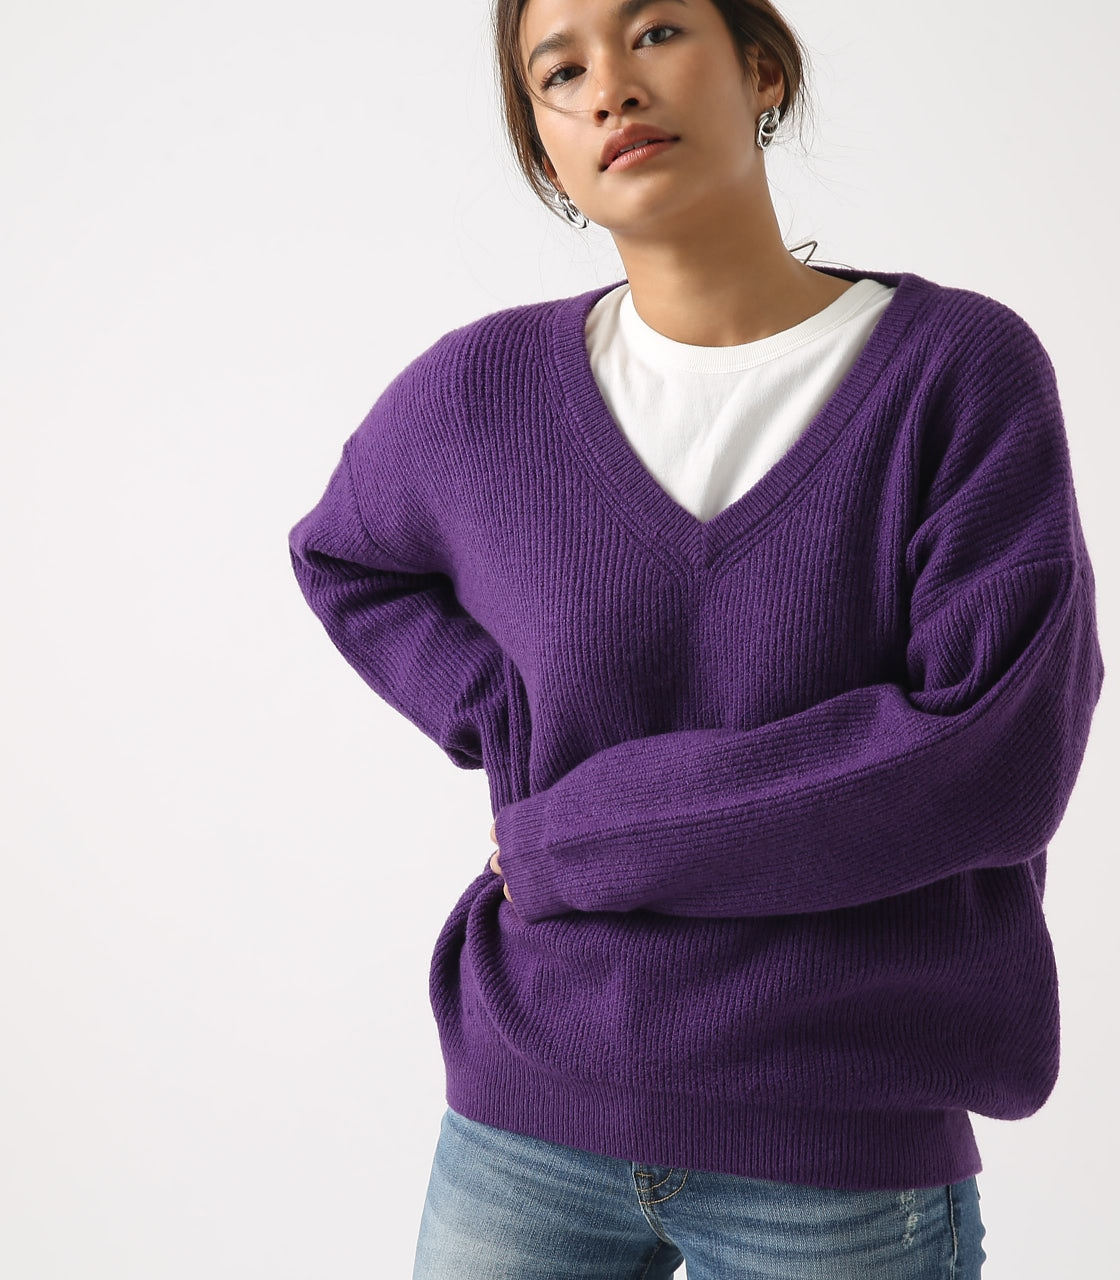 【AZUL BY MOUSSY】V NECK LOOSE KNIT TOPS 詳細画像 PUR 1